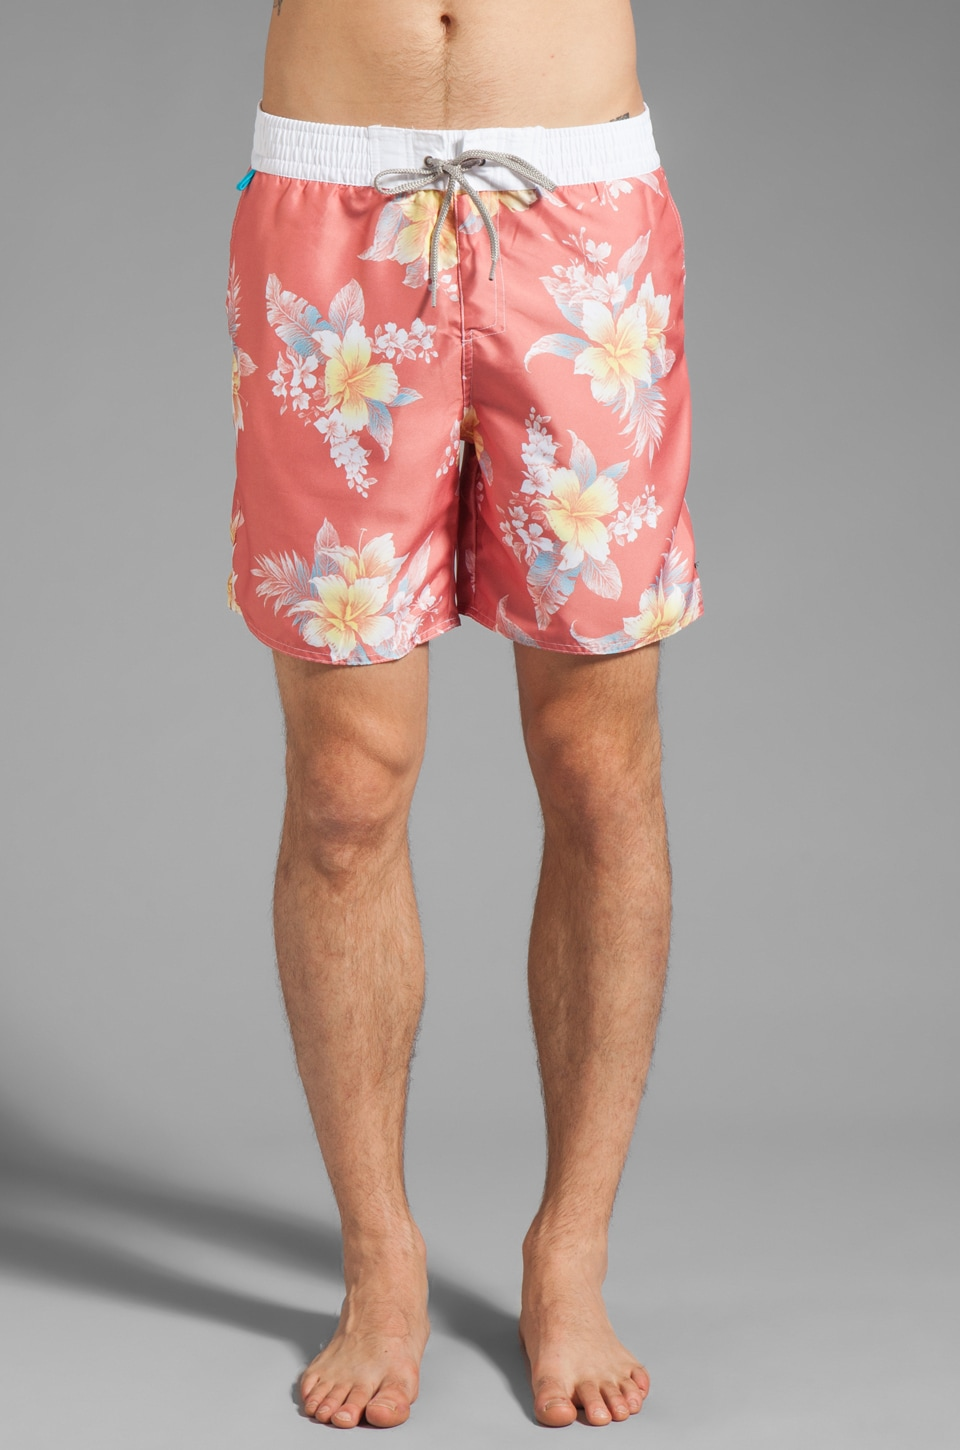 Cohesive & co. Bermuda Floral Boardshort in Cantaloupe